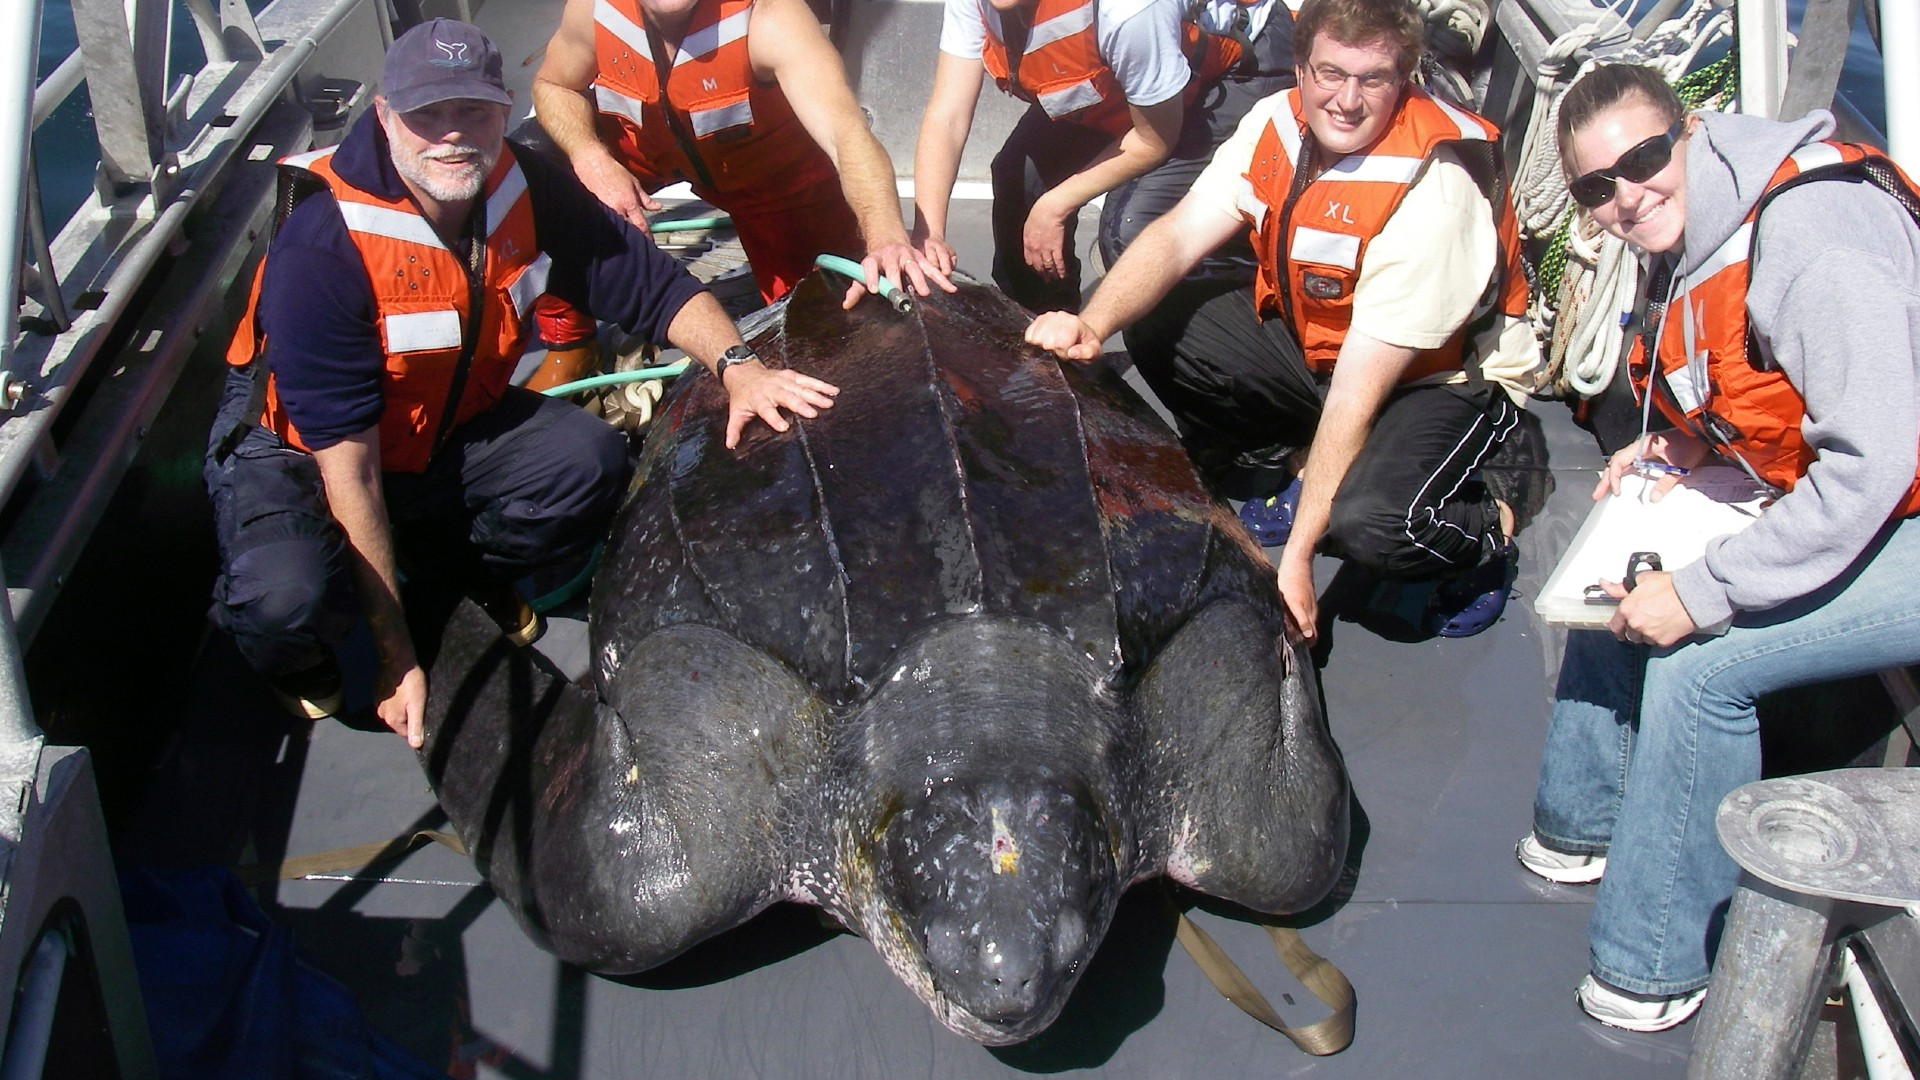 In this photo provided by Heather Harris, taken Sept. 25, 2007, in the waters off central California, scientists including Scott Benson, at far left, can be seen posing with a giant western Pacific leatherback sea turtle as they take measurements and attach a GOP satellite tracking device to its shell. (Heather Harris/NOAA-ESA Permit #15634 via AP)